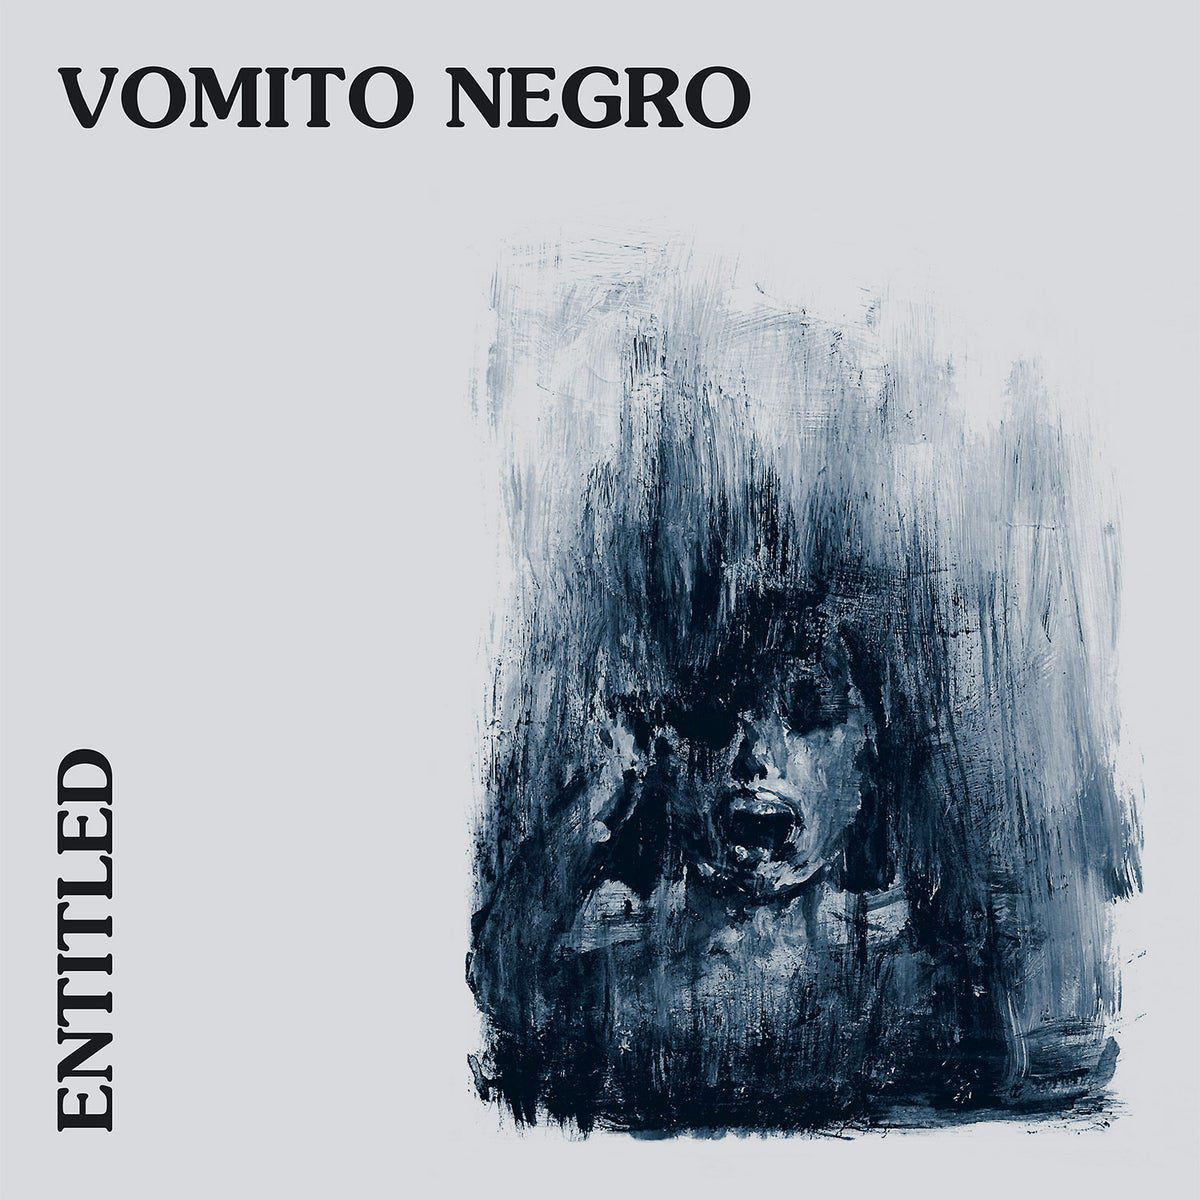 Unreleased 80s tracks from Vomito Negro released on vinyl album 'Entitled'